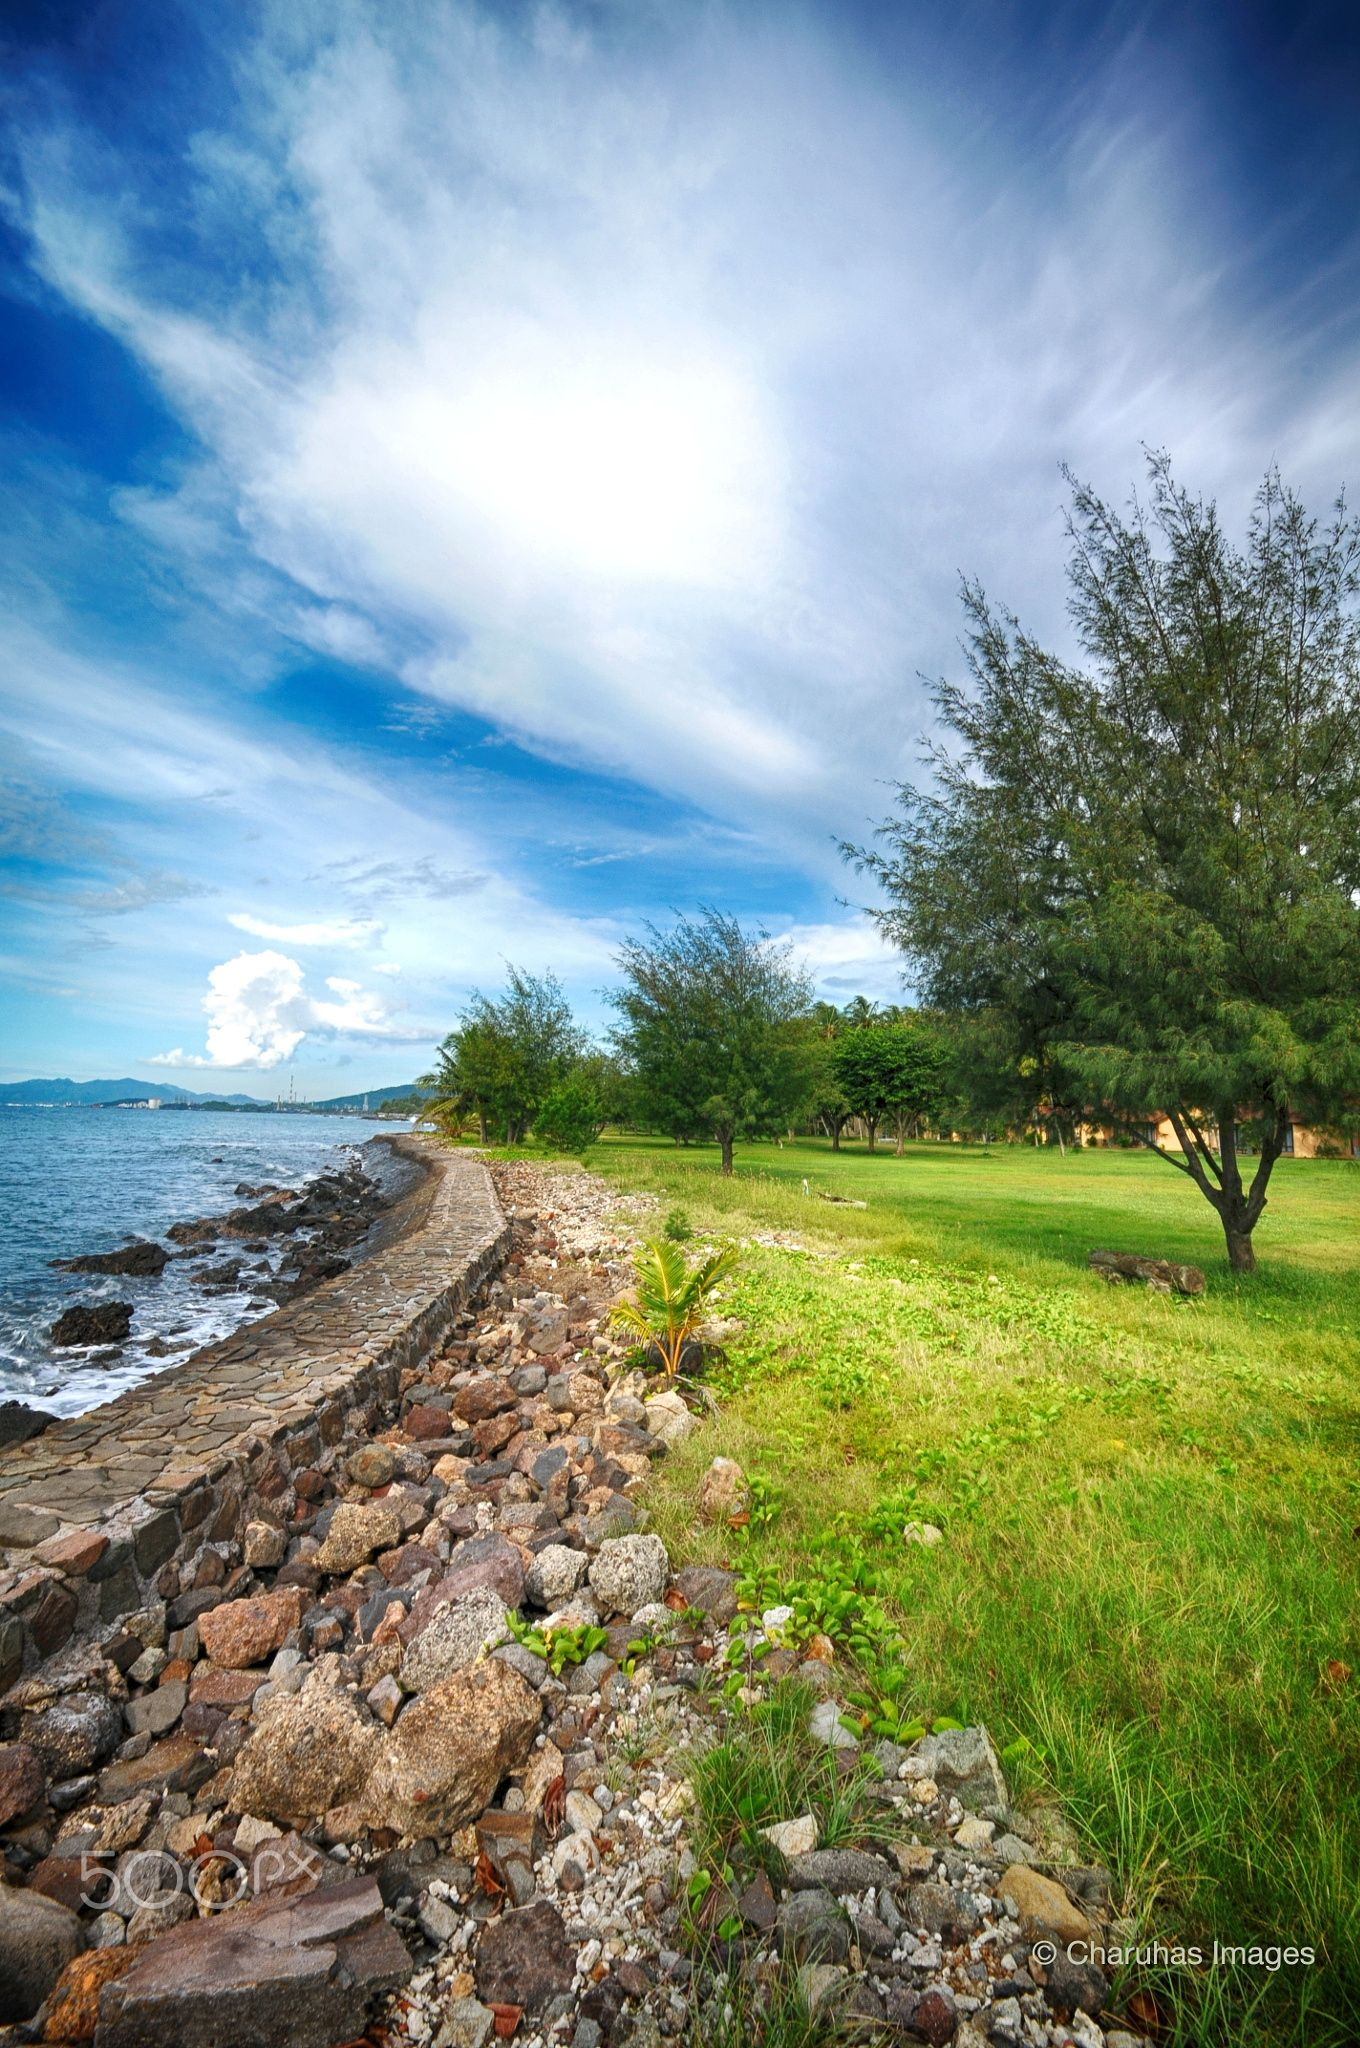 Near The Shore Sky Clouds Grass Waves Rocks Lawn Tree Sky And Clouds Beautiful Nature Nature